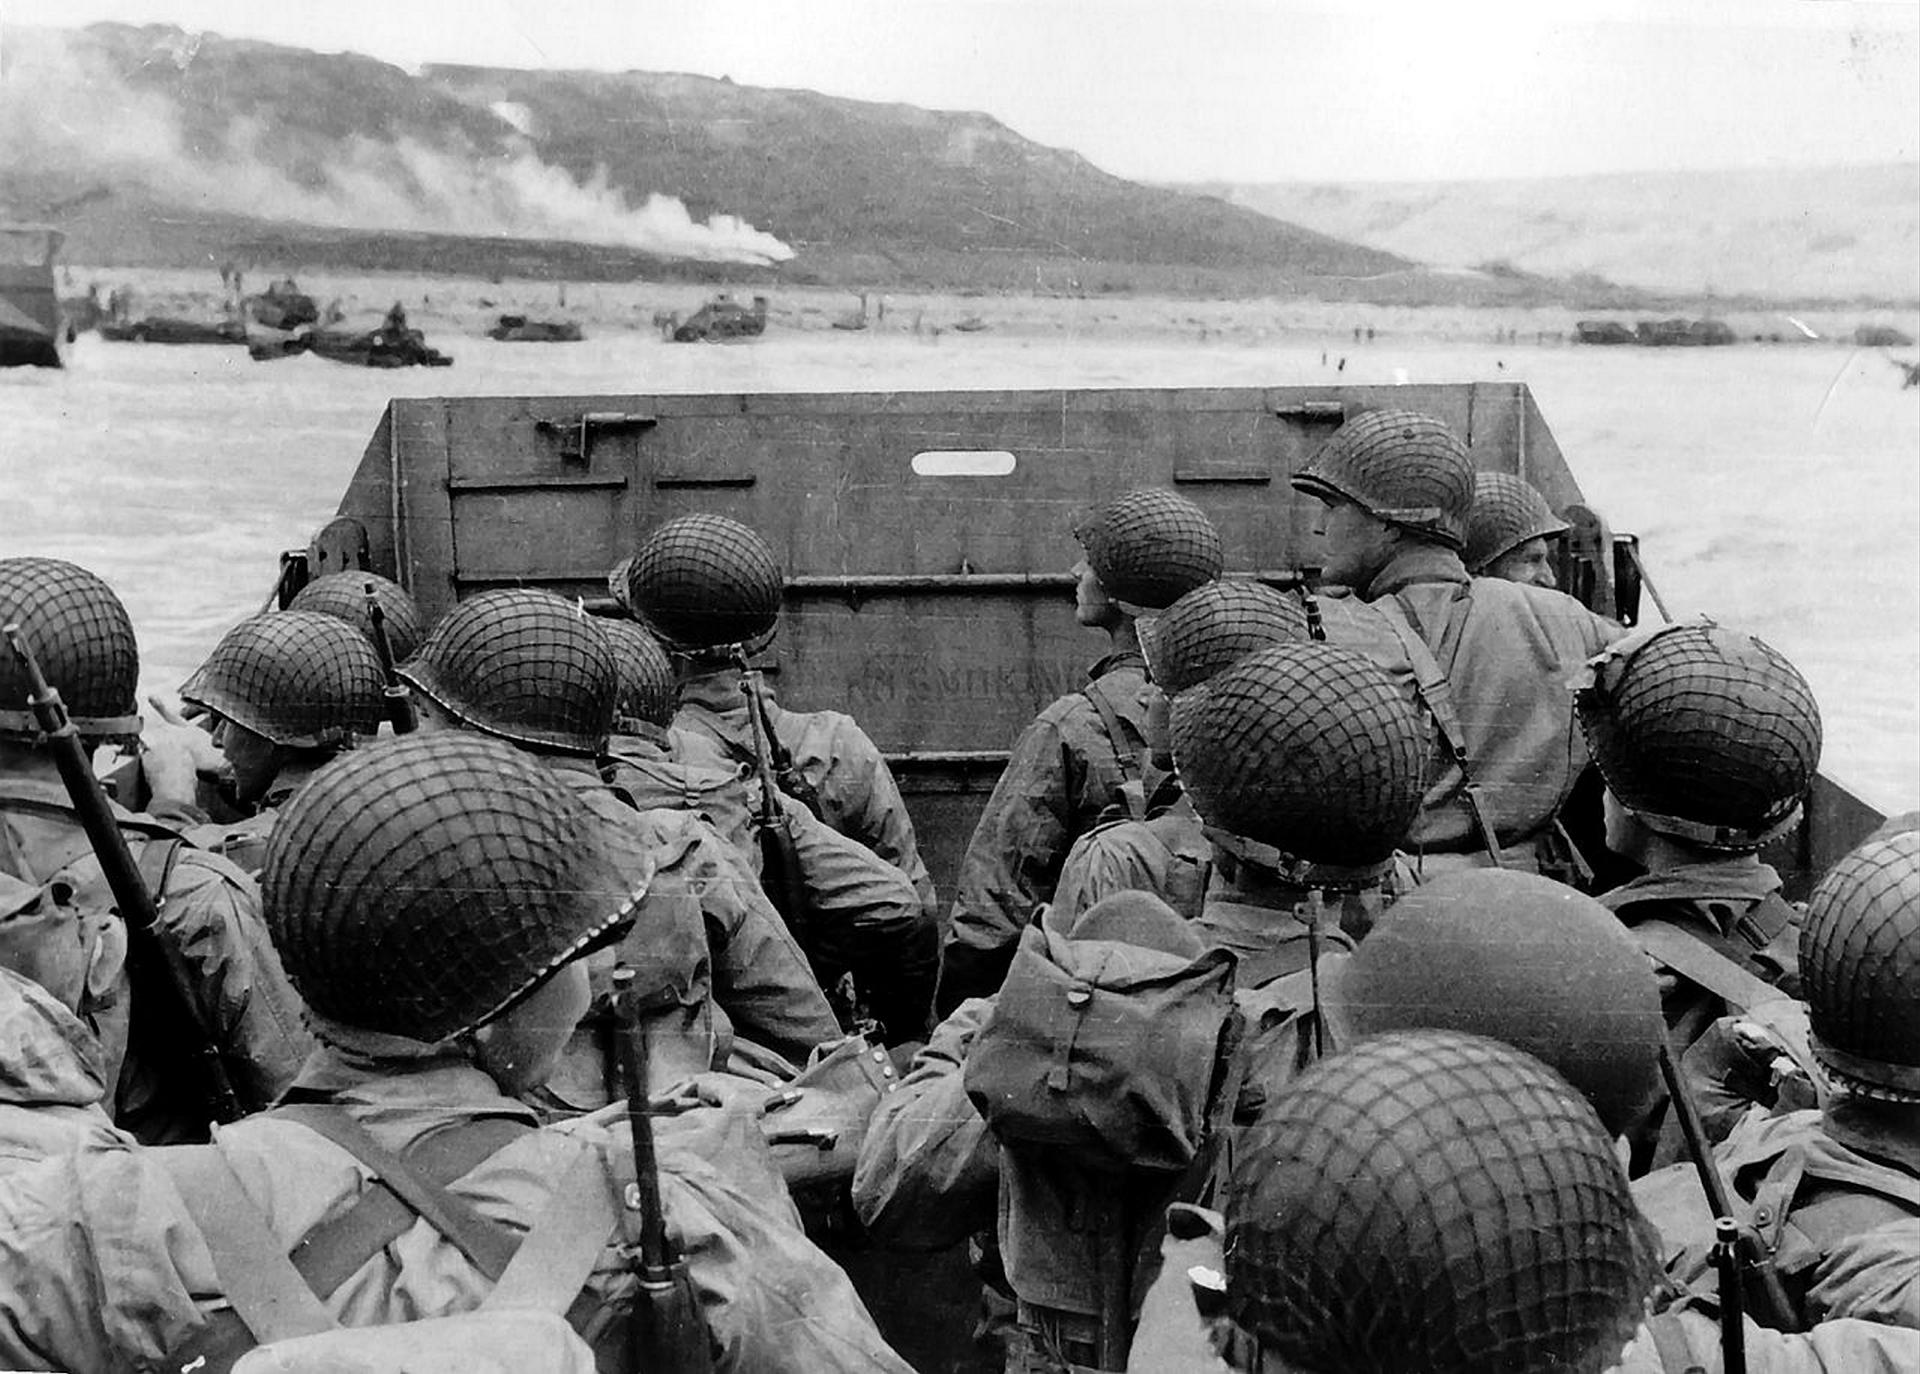 Photograph of American troops approaching Omaha Beach, Normandy, on D-Day. Dated 20th Century.